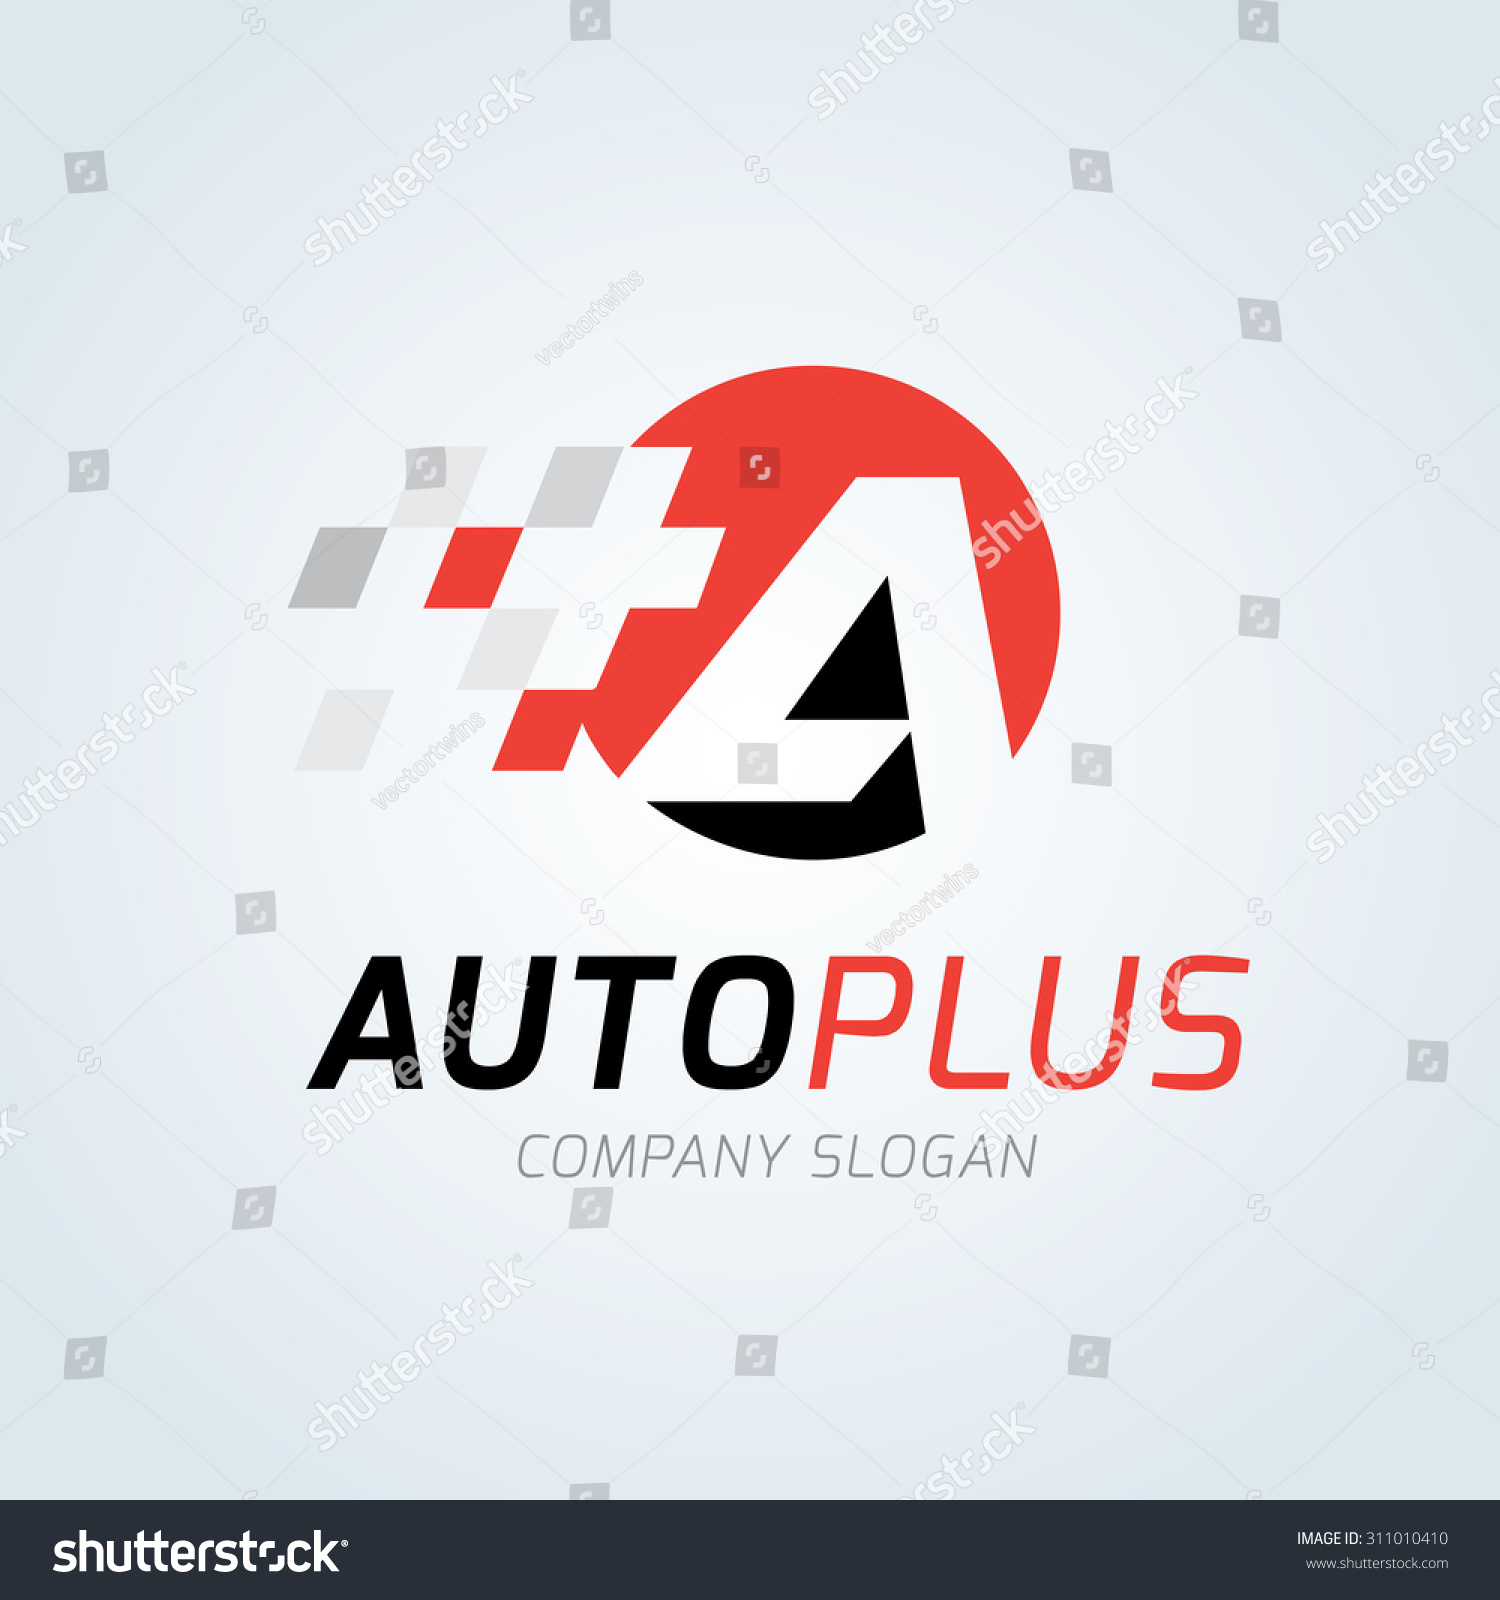 Automotive Logo Design Galleries for Inspiration  Page 5